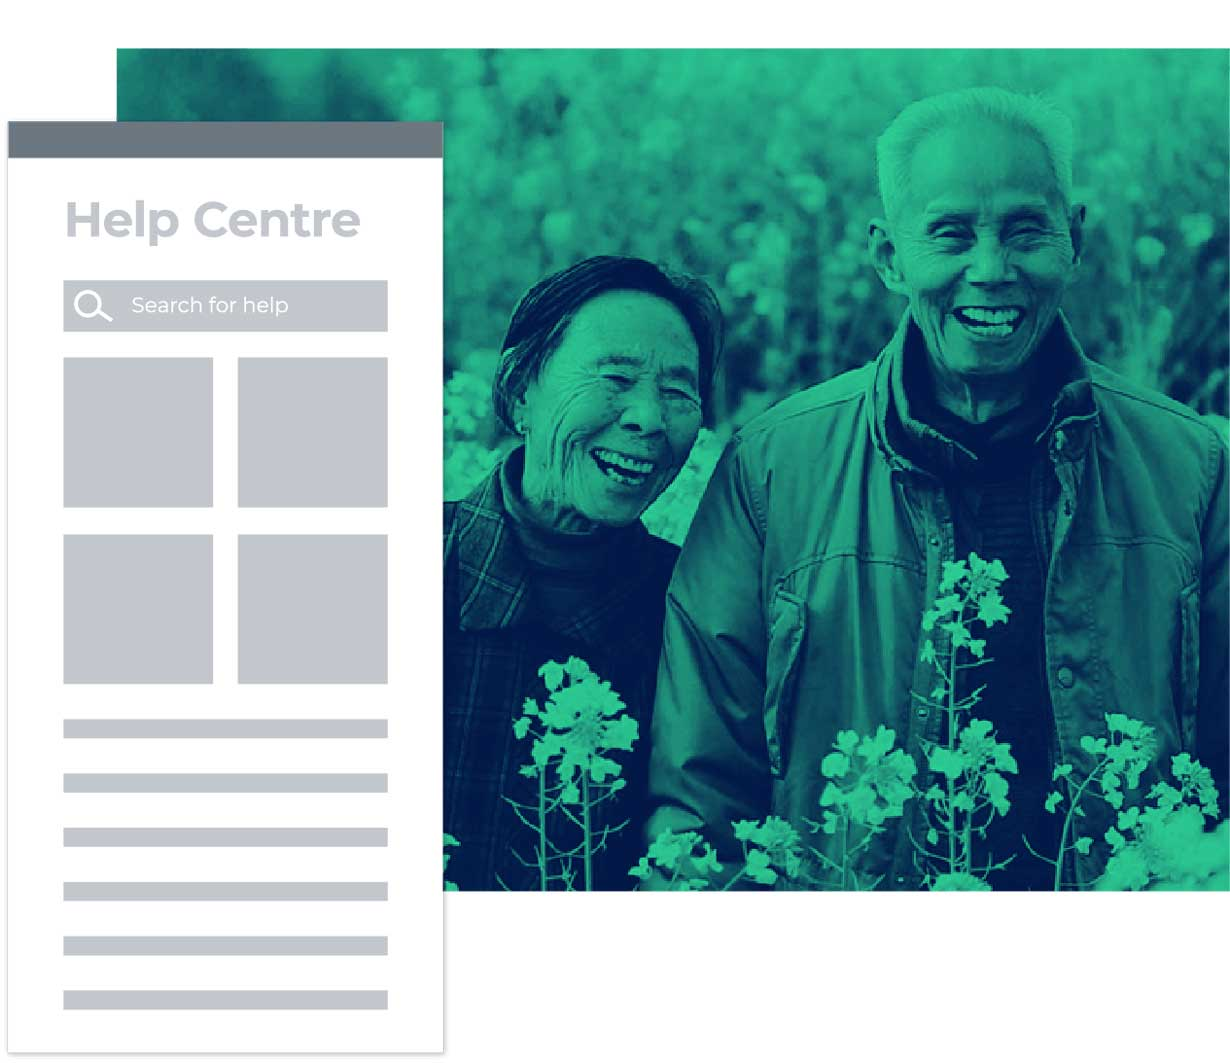 Easy access to web centre